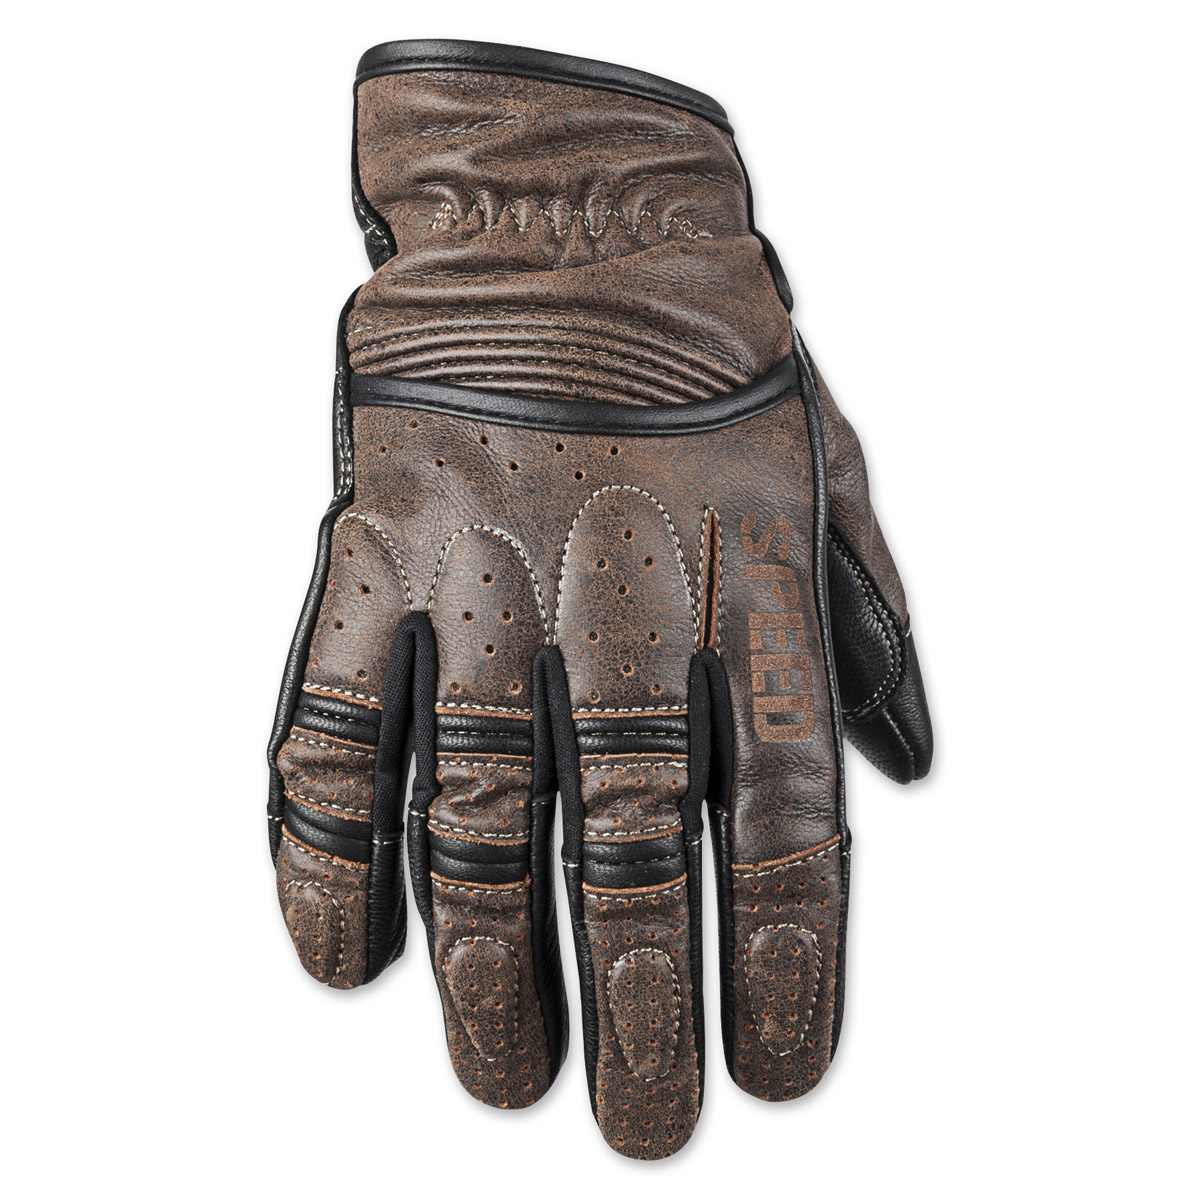 Motorcycle gloves ratings - Thank You Your Email Has Been Sent